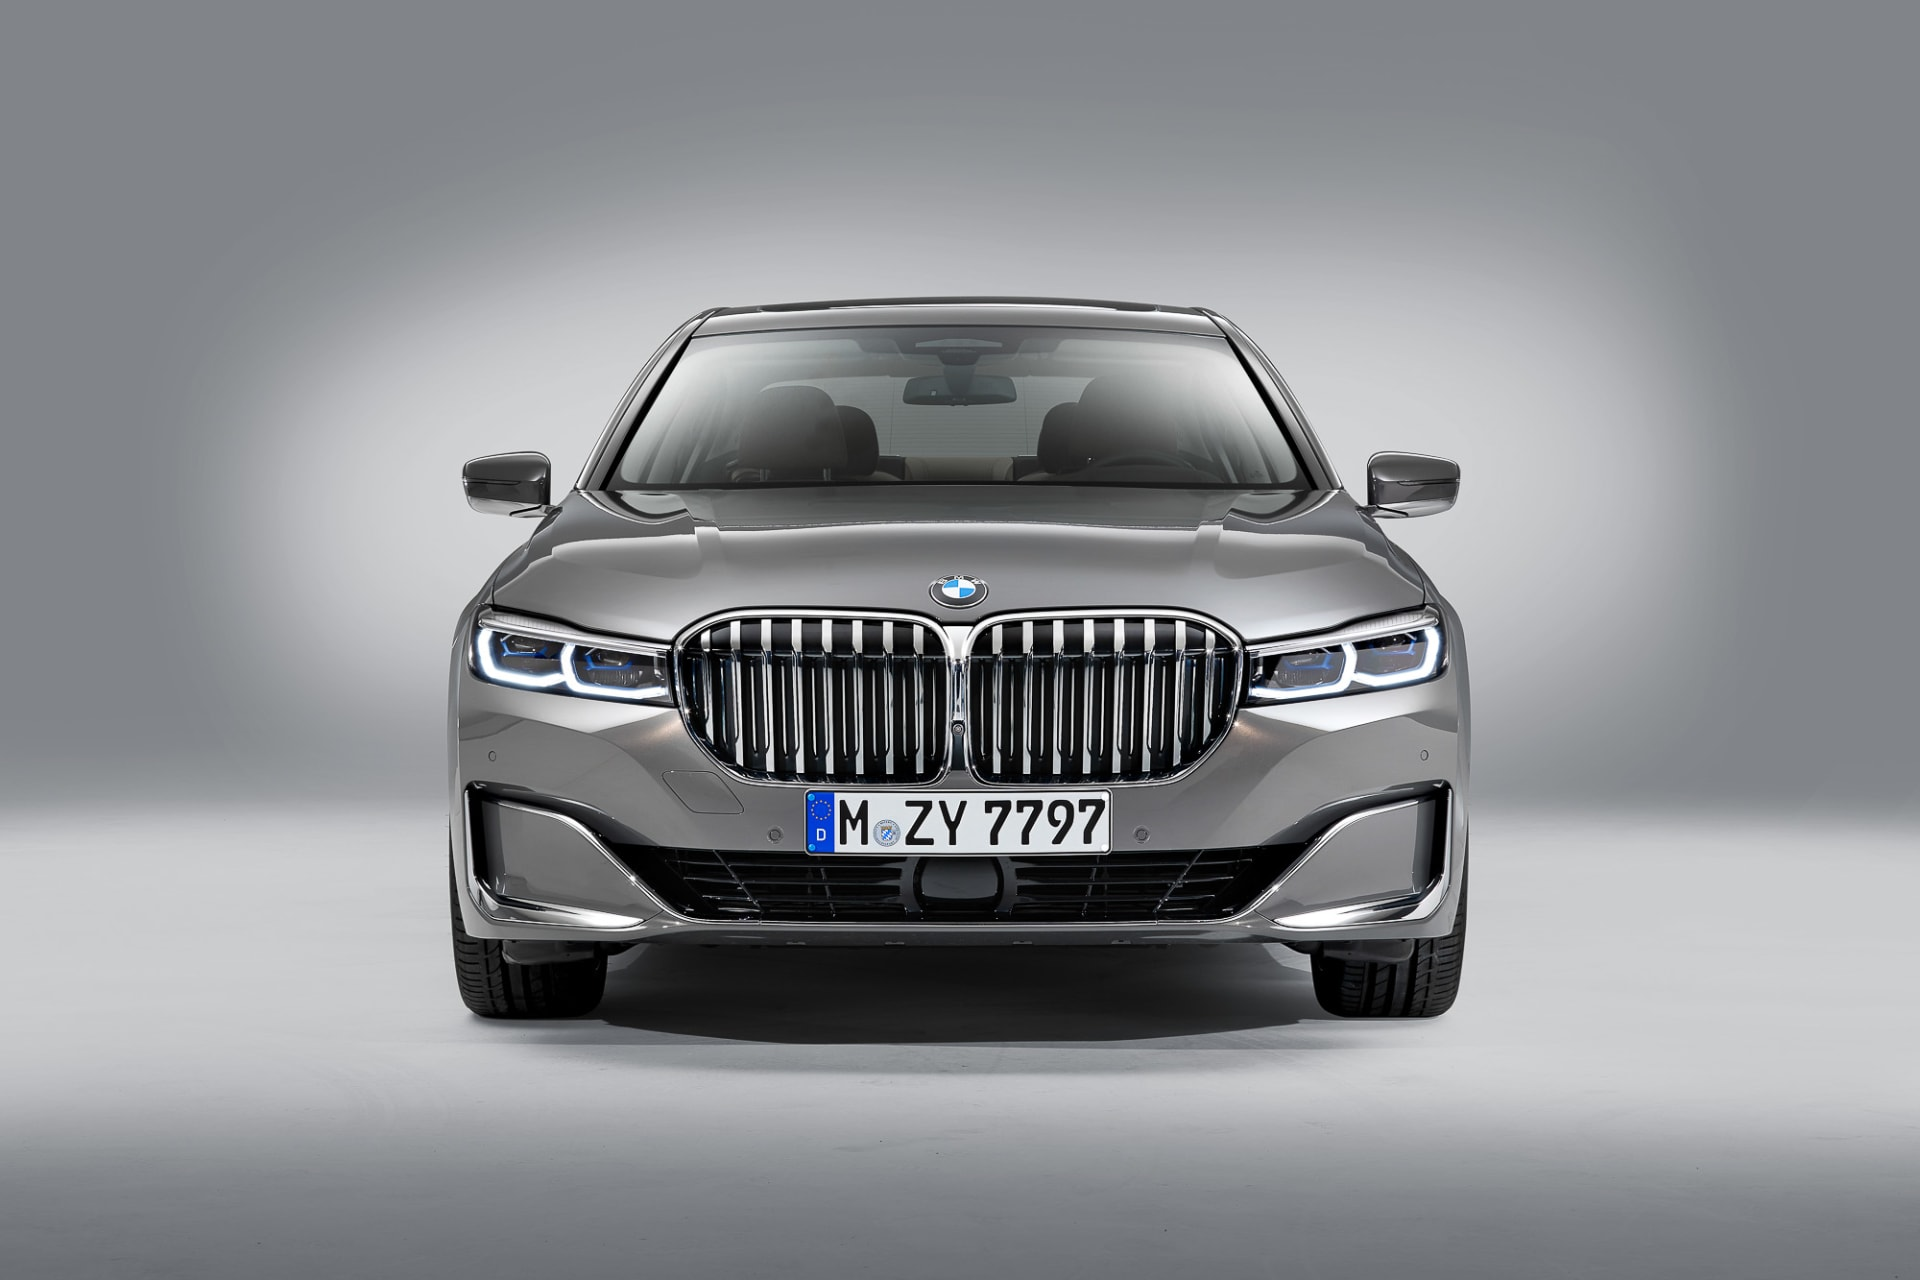 Here S Lookin At You Kidneys Updated Bmw 7 Series Gets Gigantic